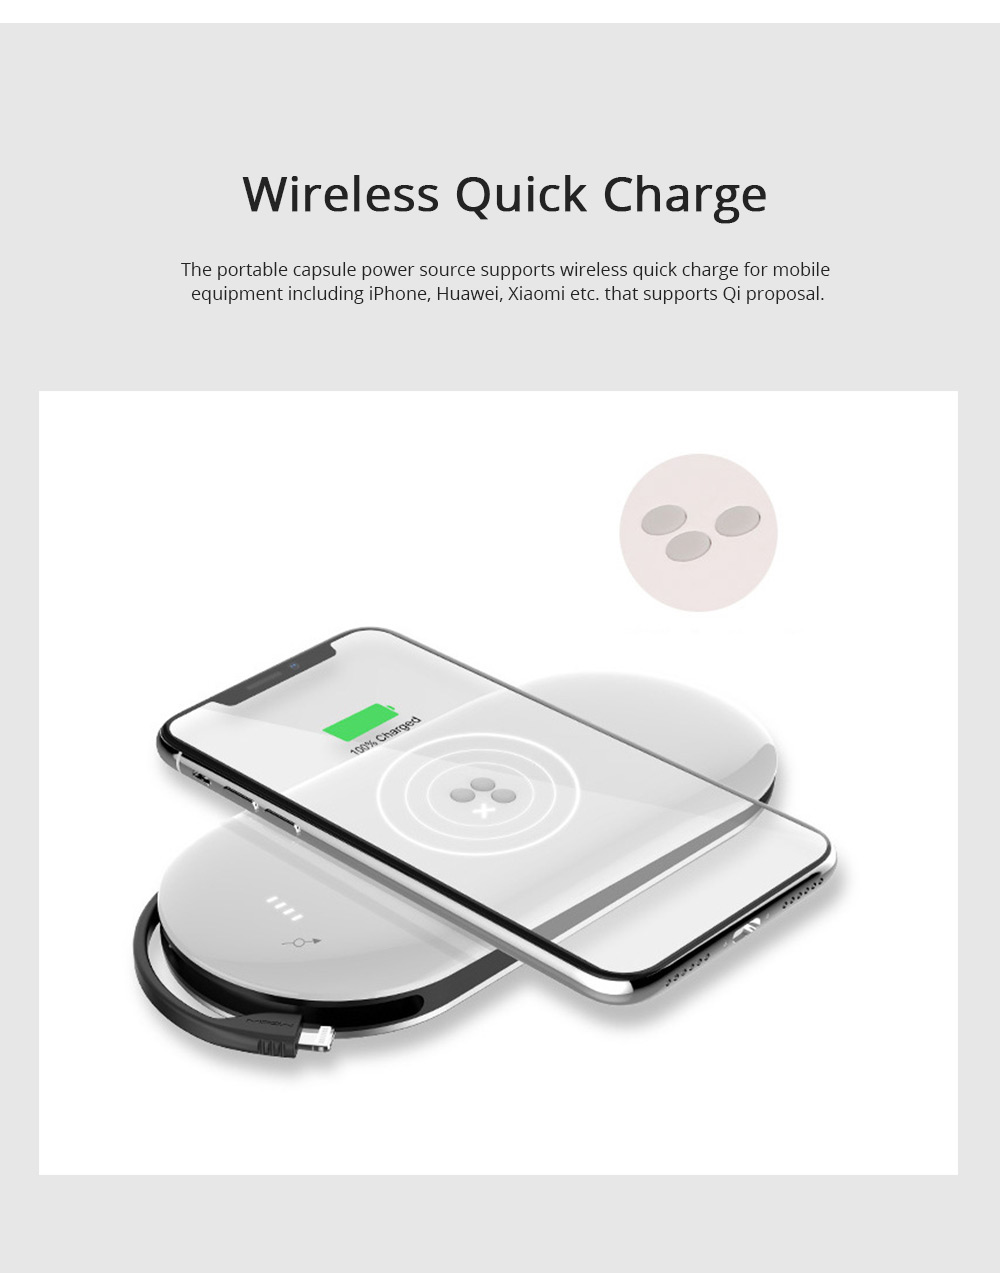 Portable Capsule Wireless Power Source for iPhone iPad Ultrathin Wireless Power Bank Easy Carry Quick Charge Large Capacity 10000mAh Power Source 2